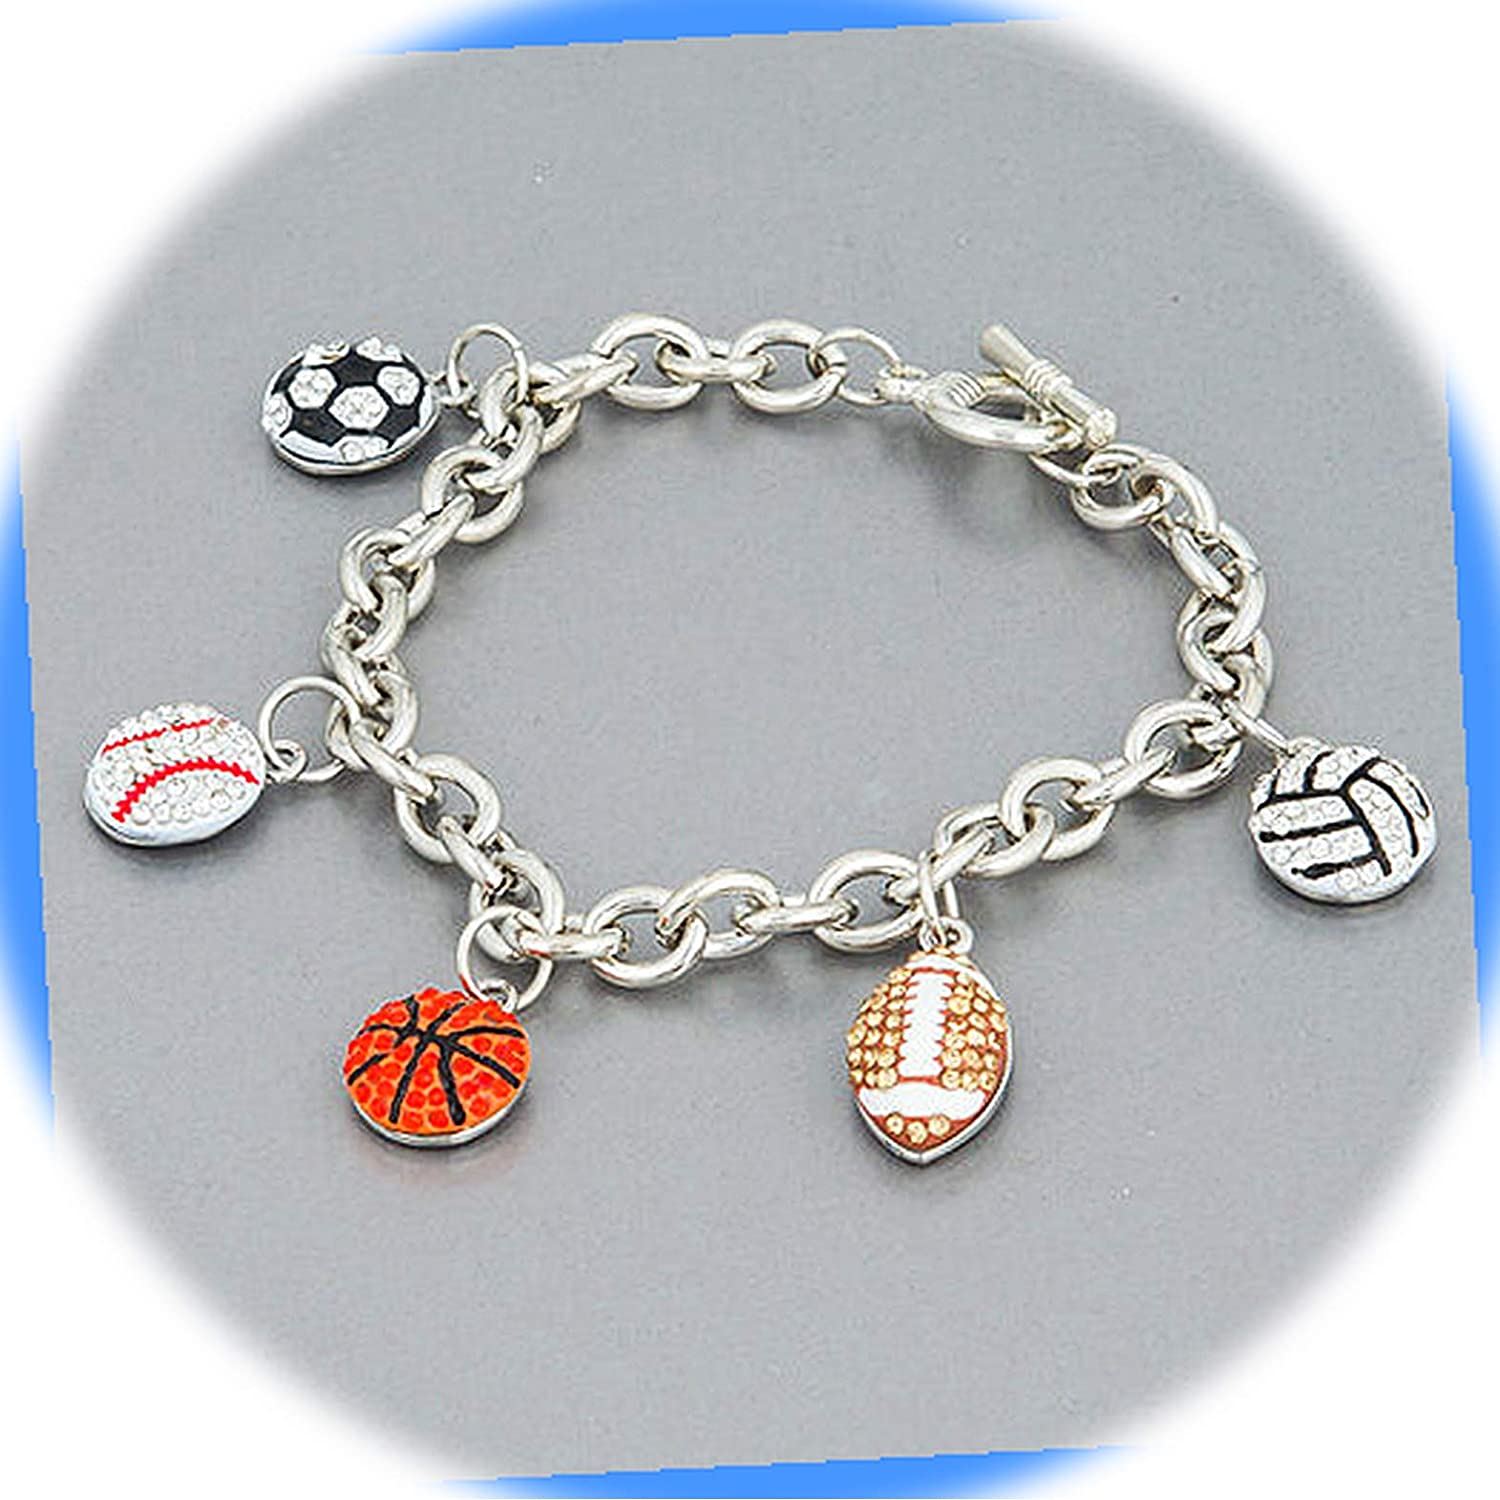 New Silver Tone Color Discount mail order Chain Baseball Quantity limited Football Basketball Soccer